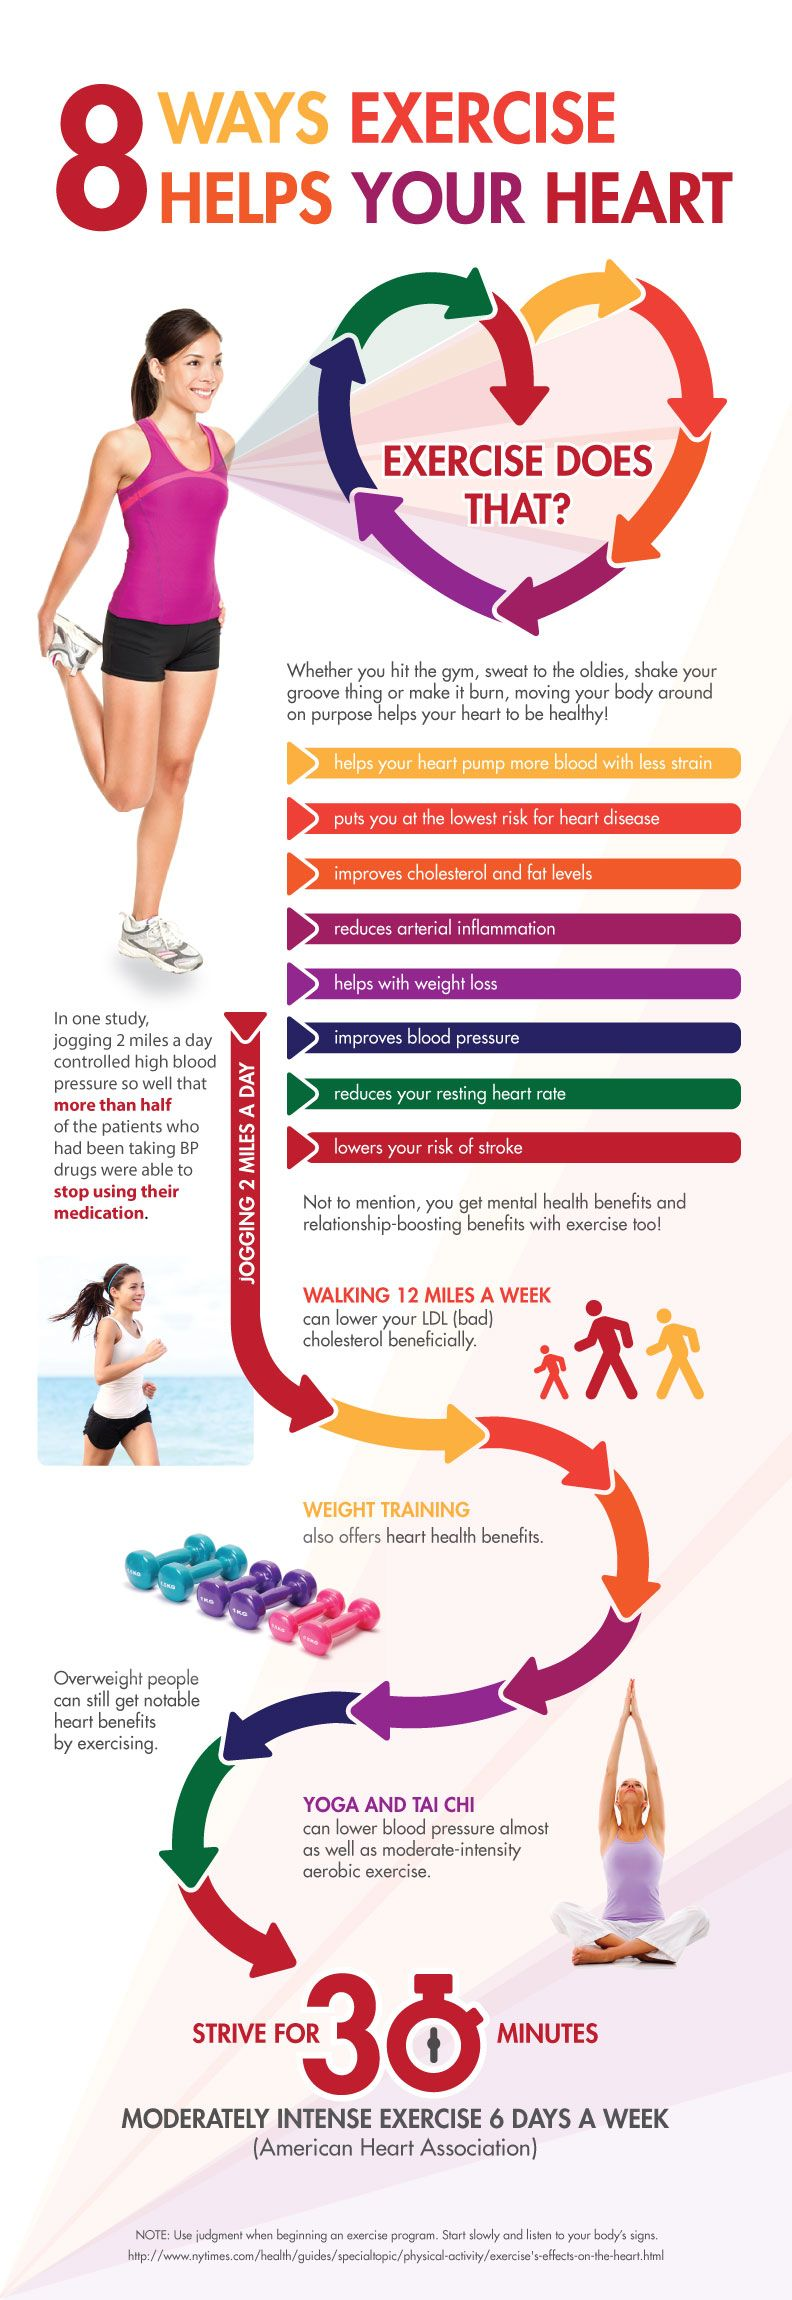 Ways exercise helps your heart